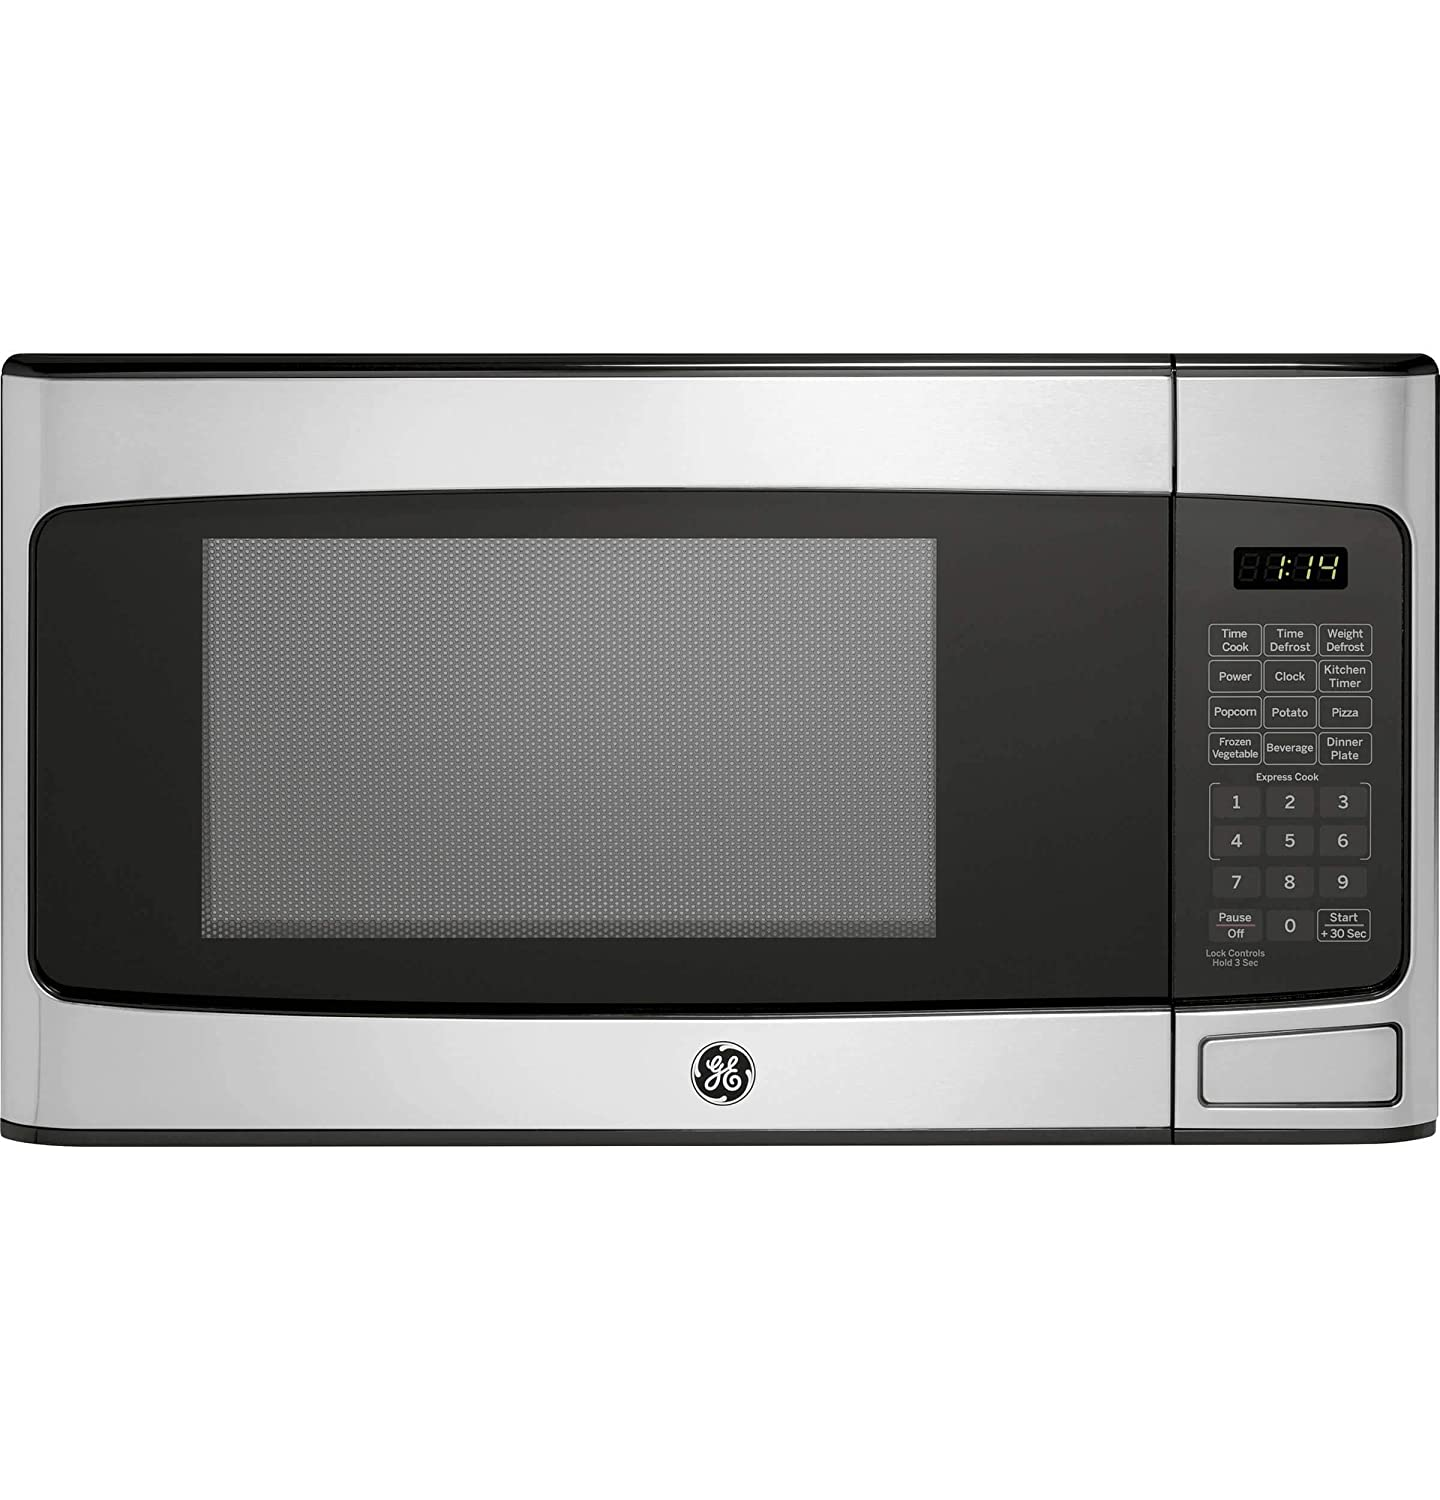 GE 1.1 Cu Ft Countertop Stainless Steel Microwave Oven (Certified Refurbished)